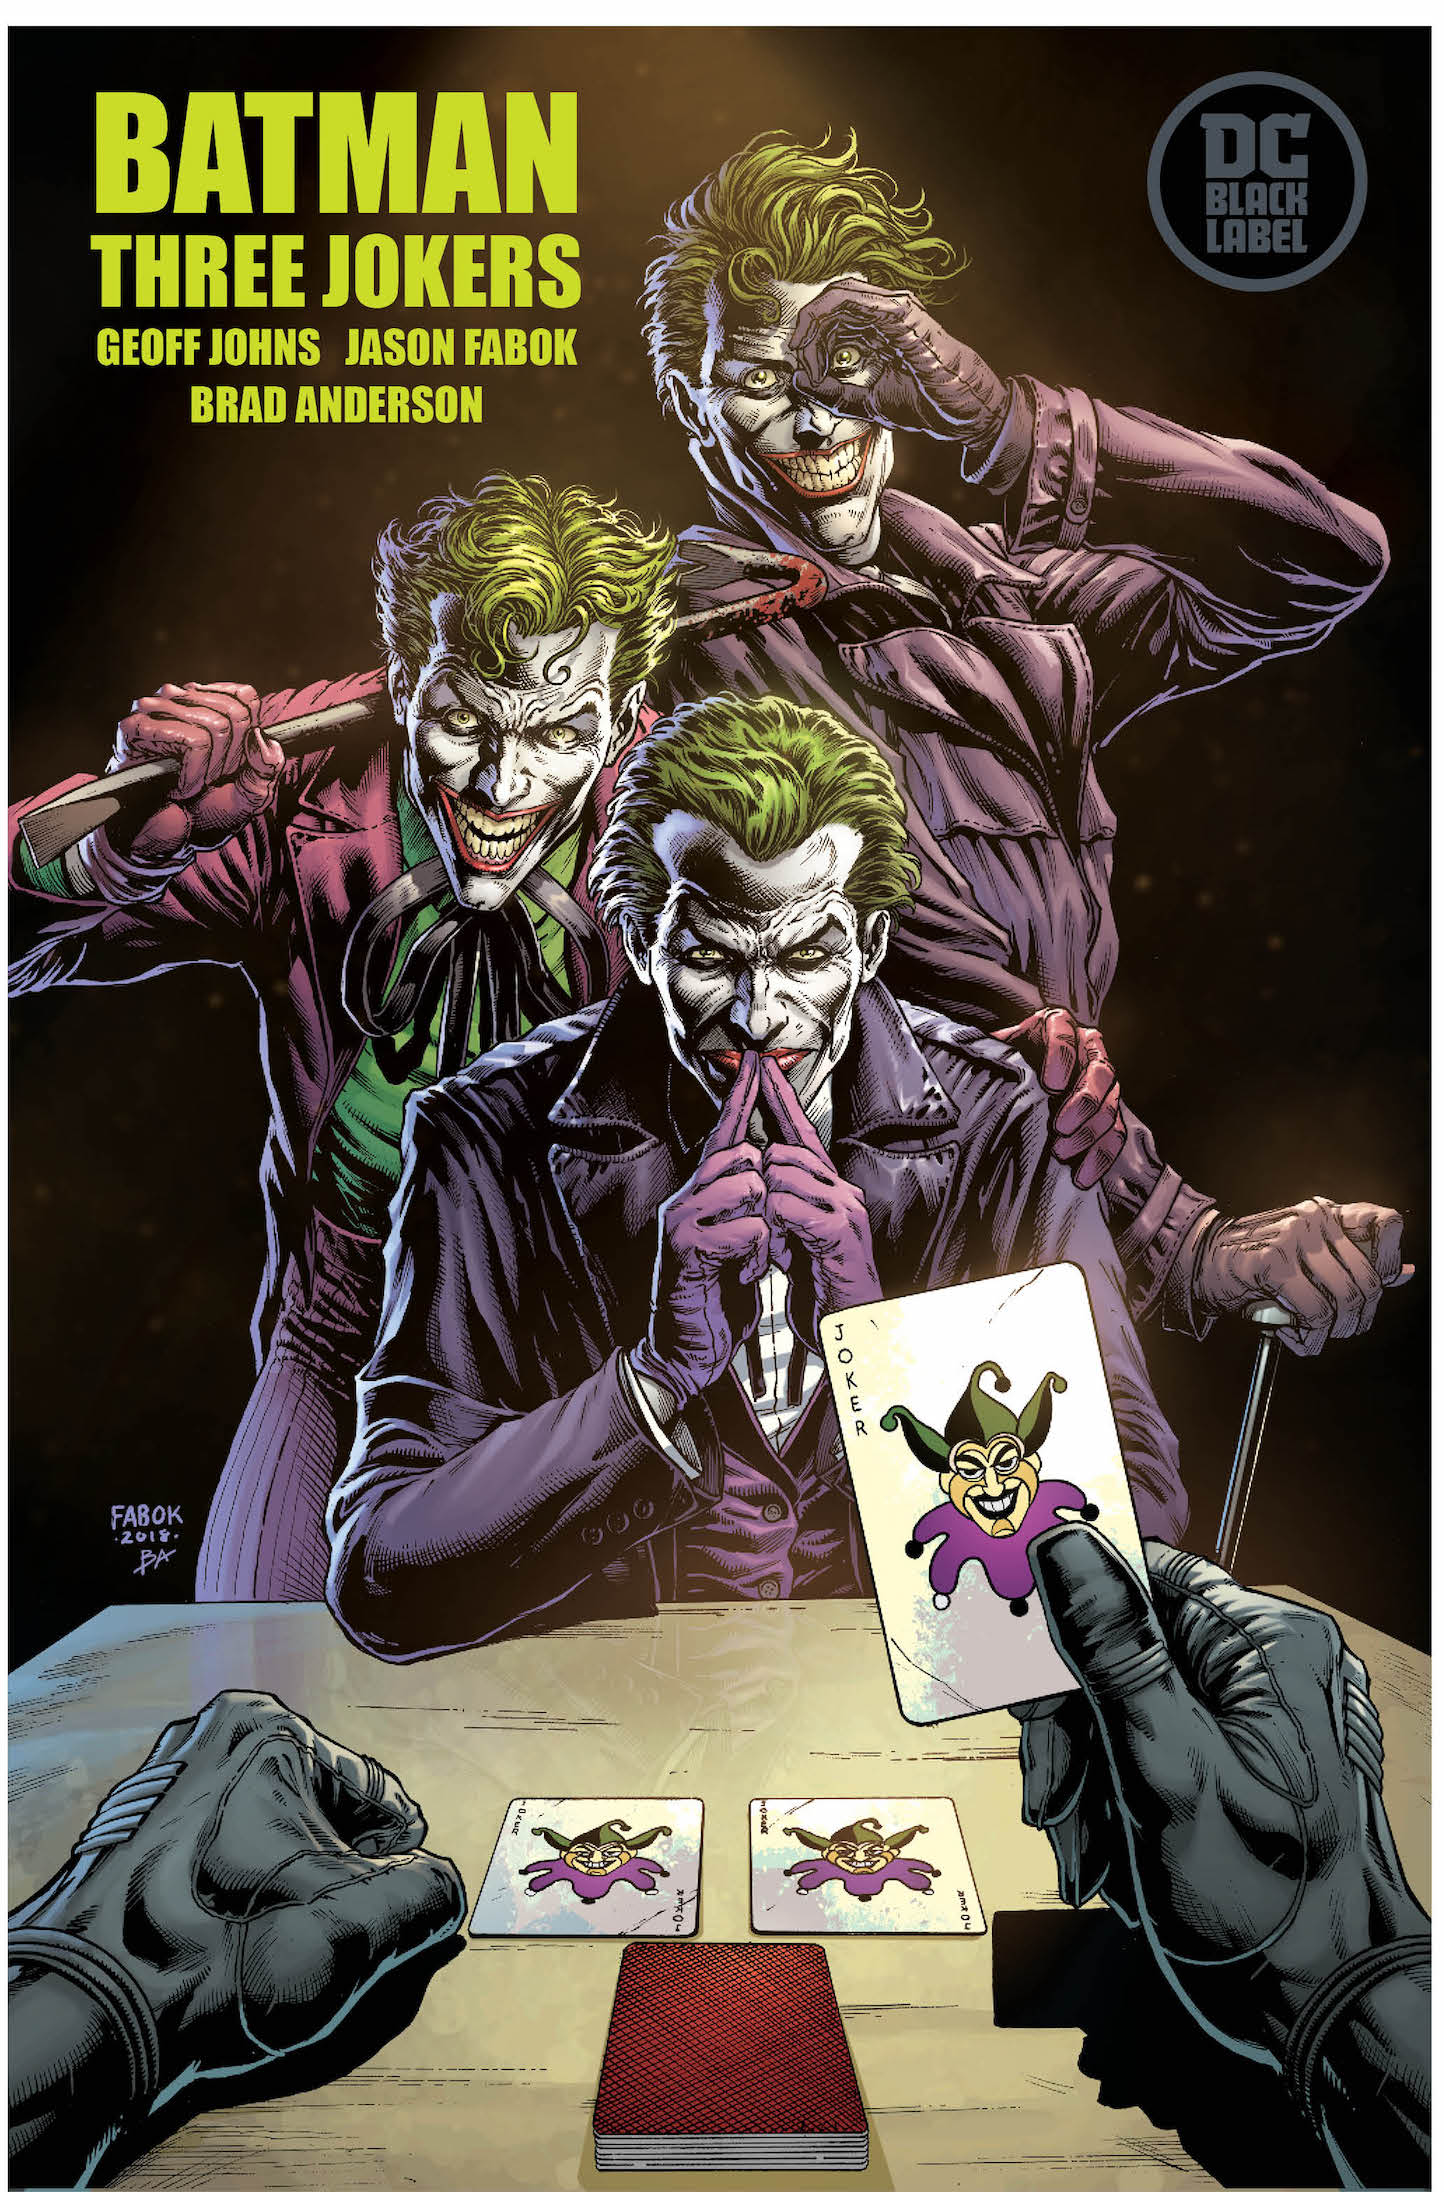 DC Comics hypes 'Batman: Three Jokers' #1 with a scarred Batman